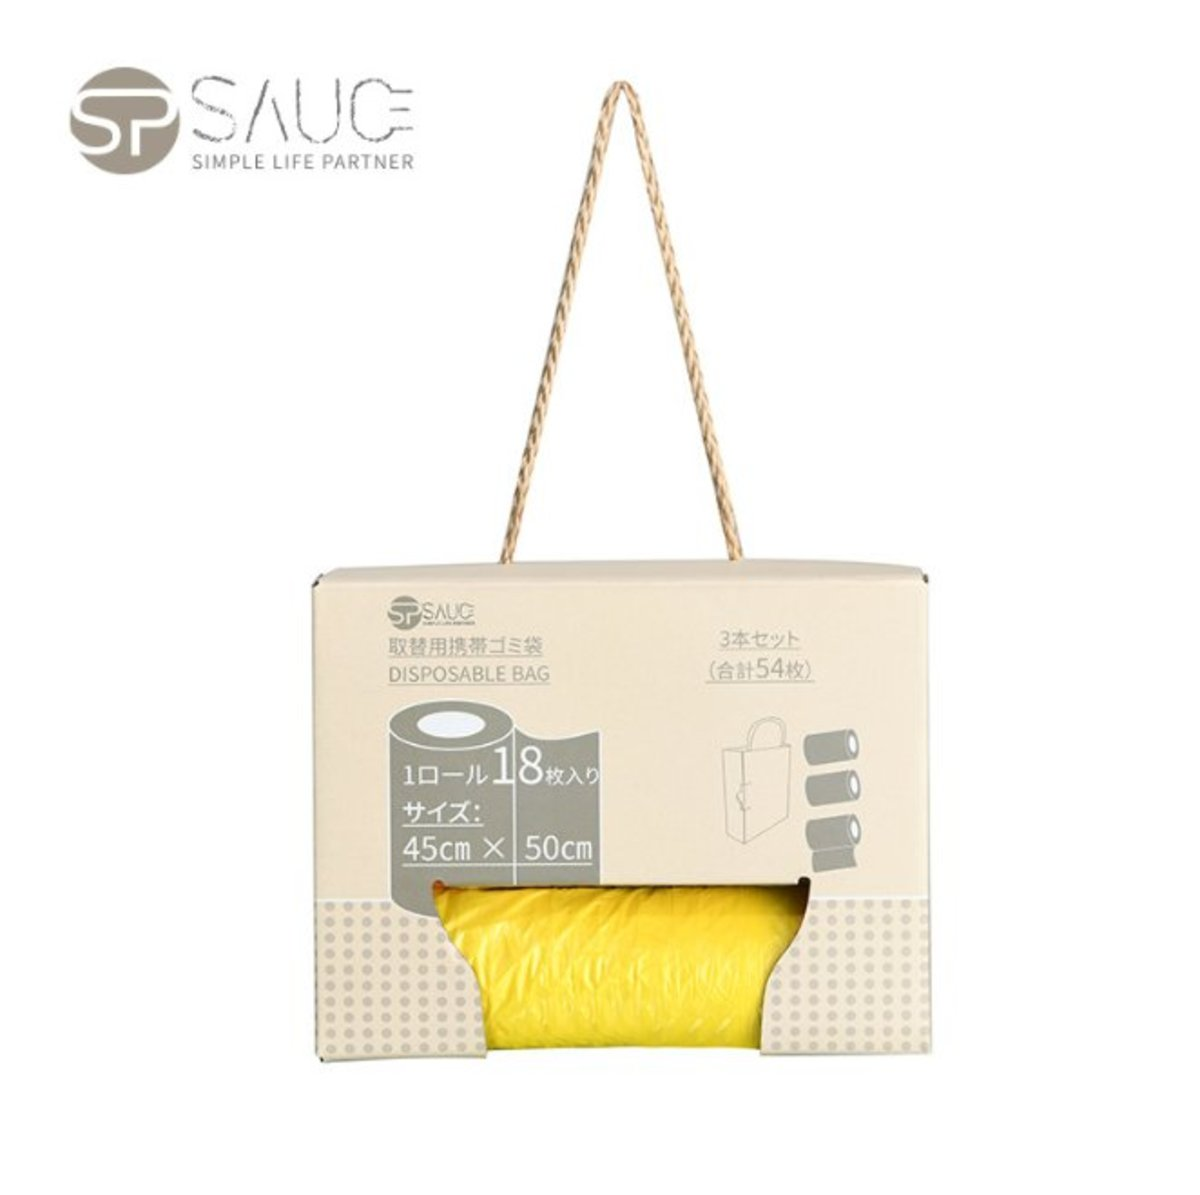 Strap-type thickened garbage bag (3 rolls) -45x50cm yellow